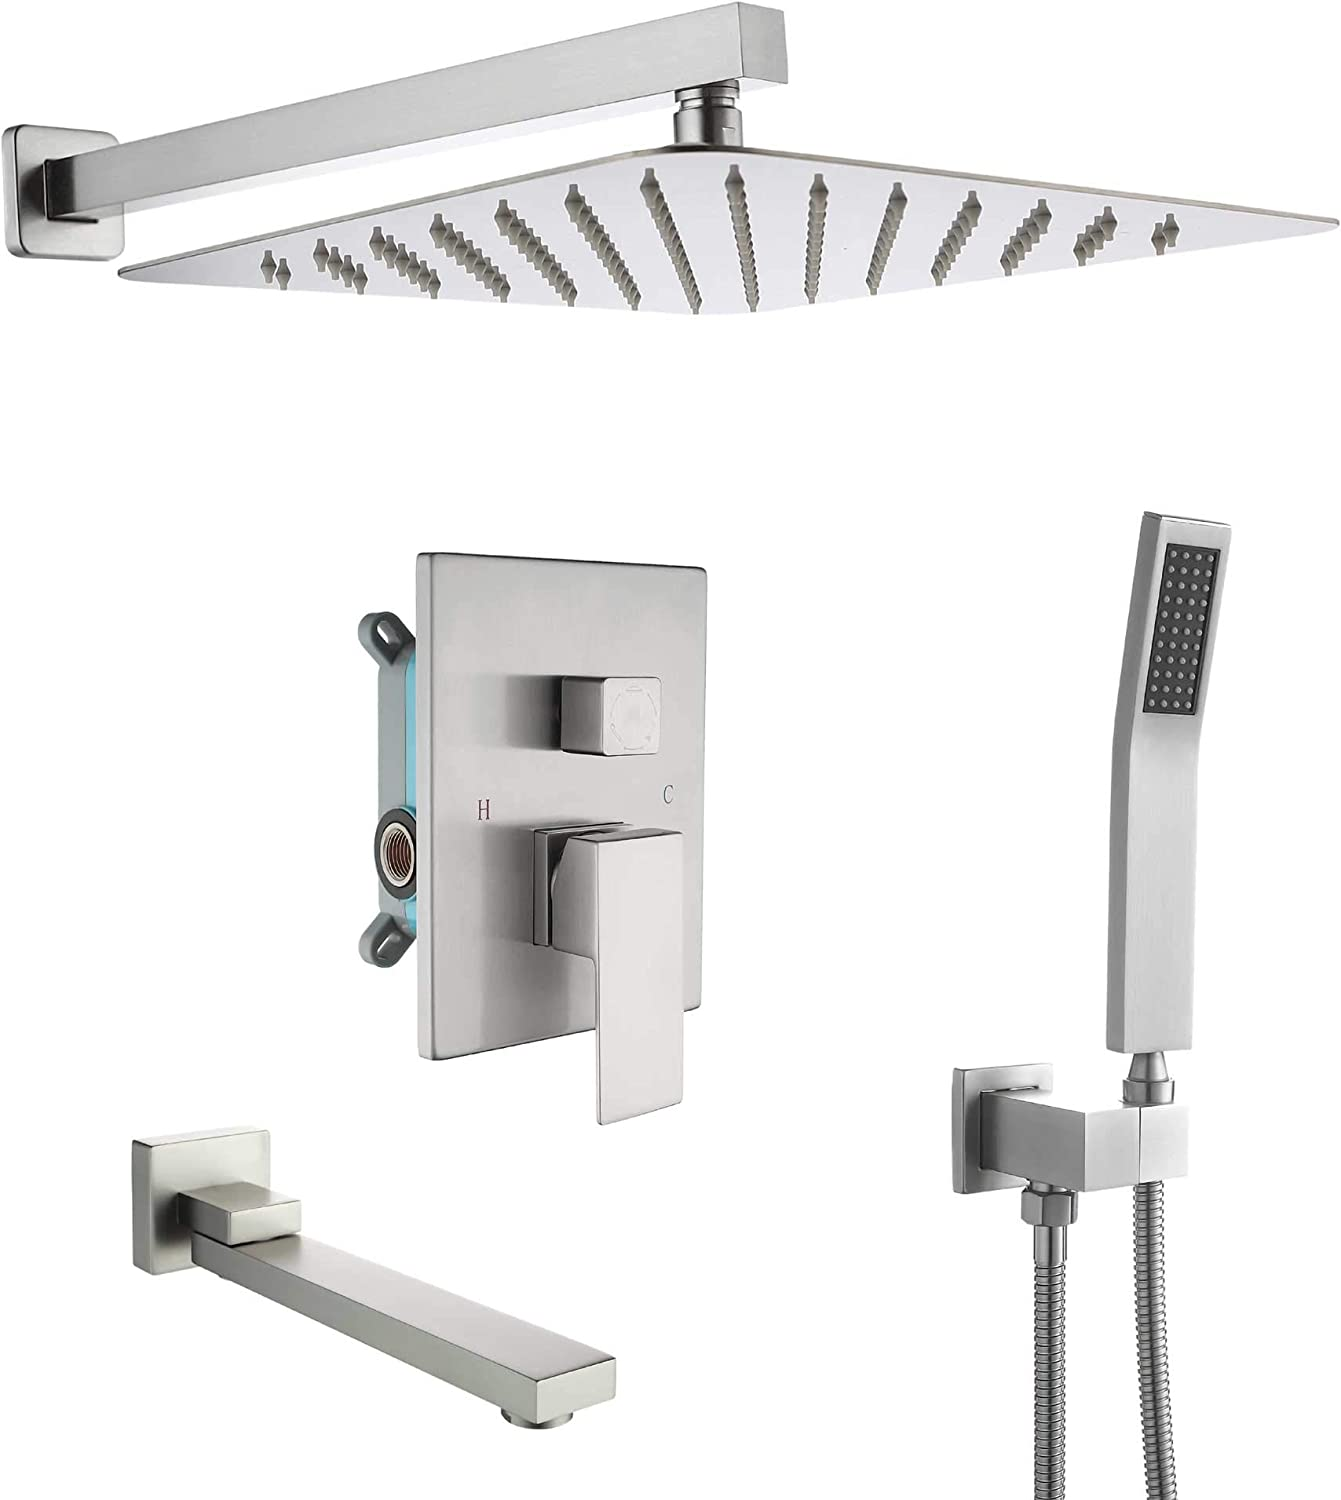 Dobrass Tub Shower Faucets Set Complete With Pre Embedded Valve 10 Inch Square Waterfall Shower Head System With Handheld Shower And Tub Spout Bathroom With Bathtub Wall Mounted Brushed Nickel Amazon Com